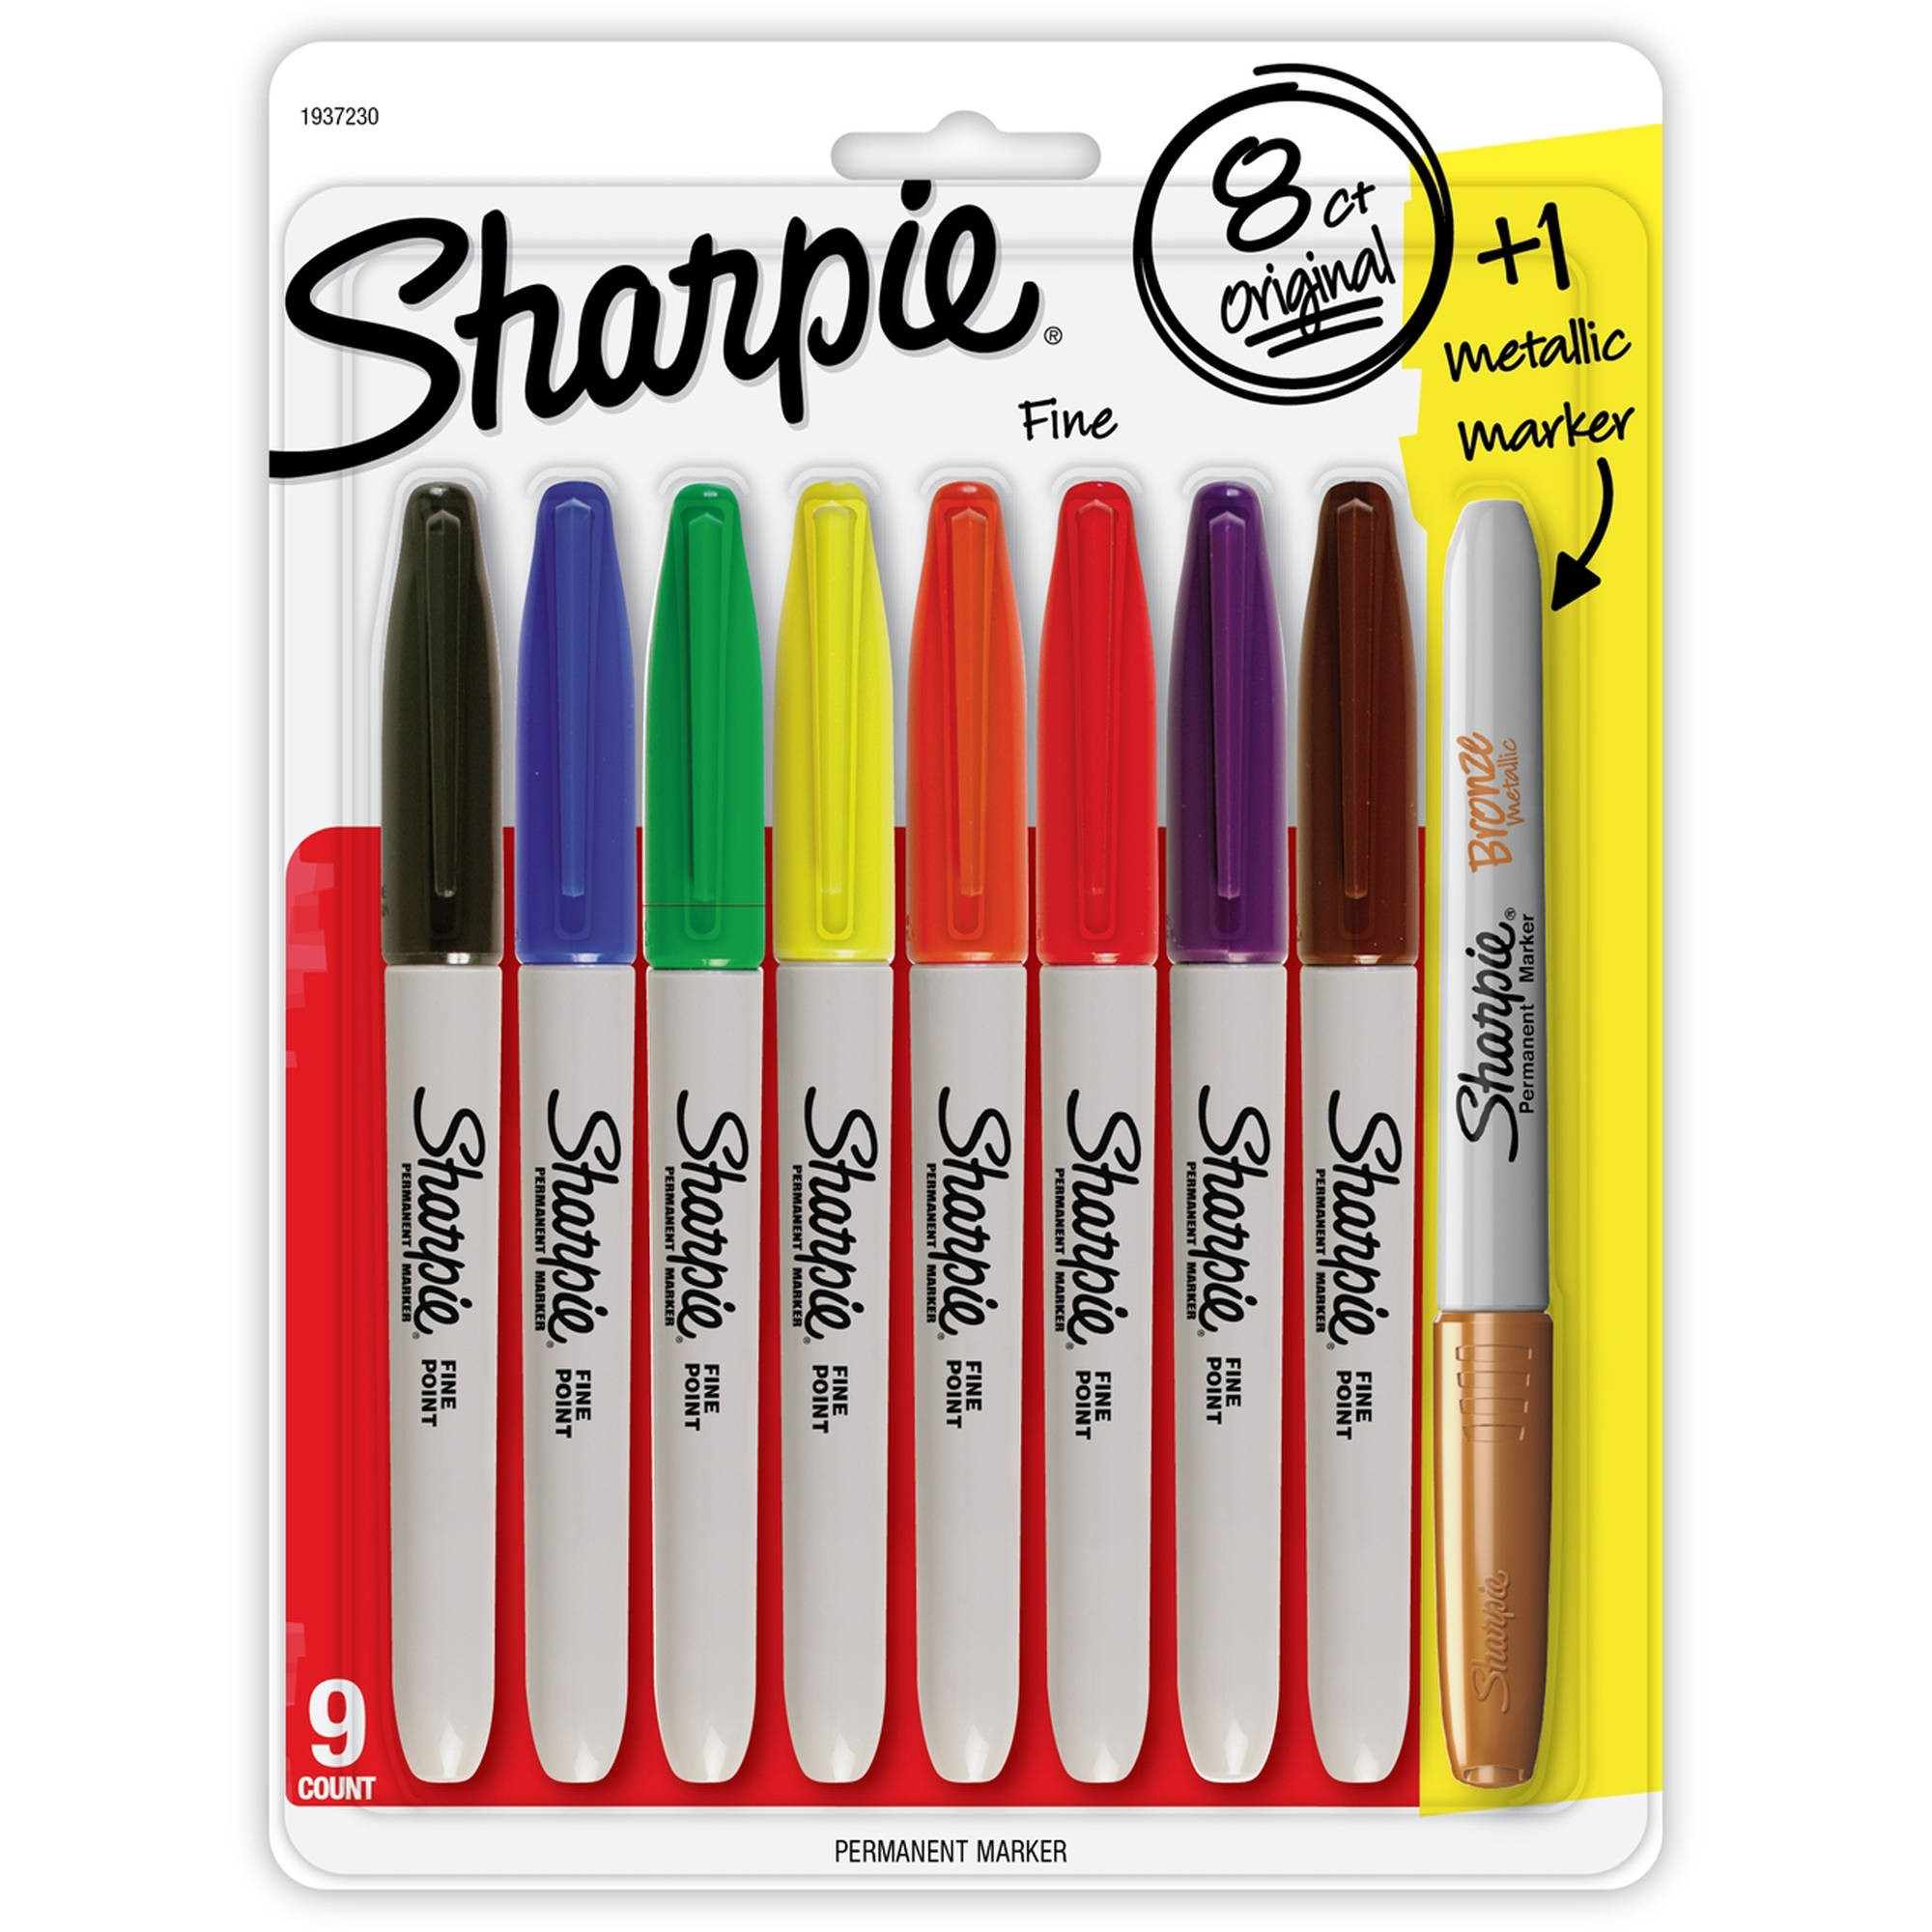 Sharpie Permanent Markers, Fine Point, Assorted Colors and Metallic Bronze, 8 +